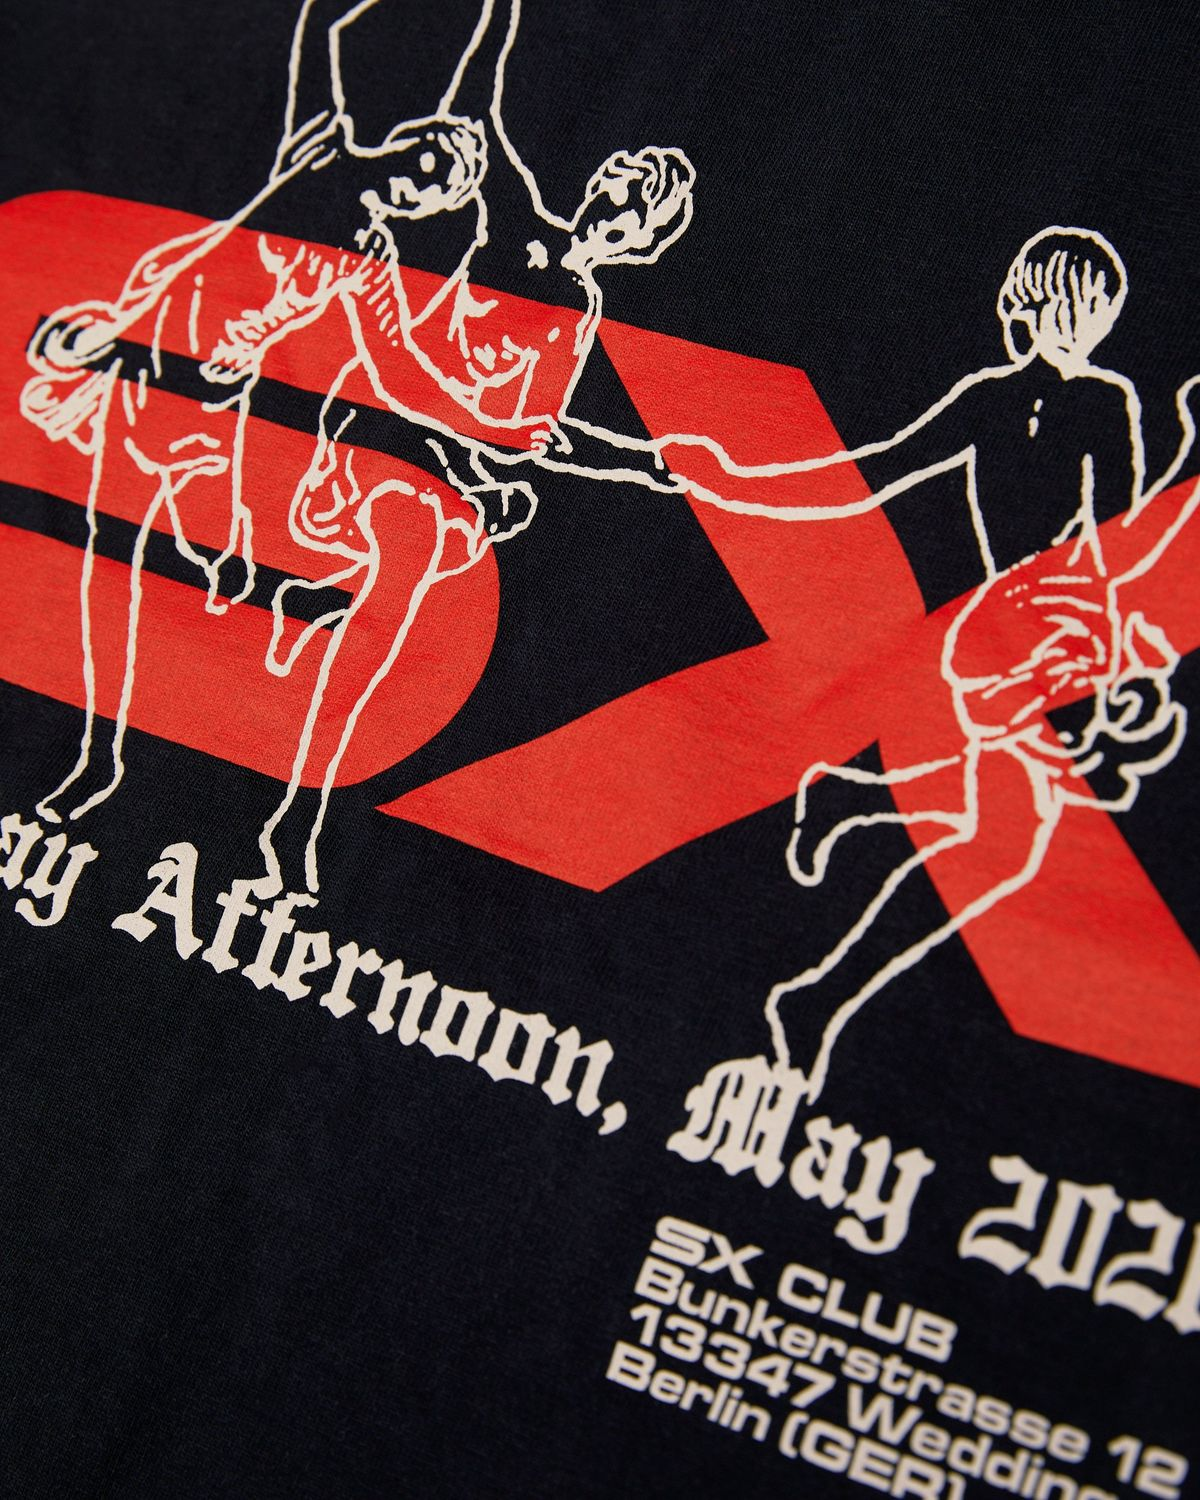 This Never Happened - Dance Clubs T-Shirt Black - Image 3